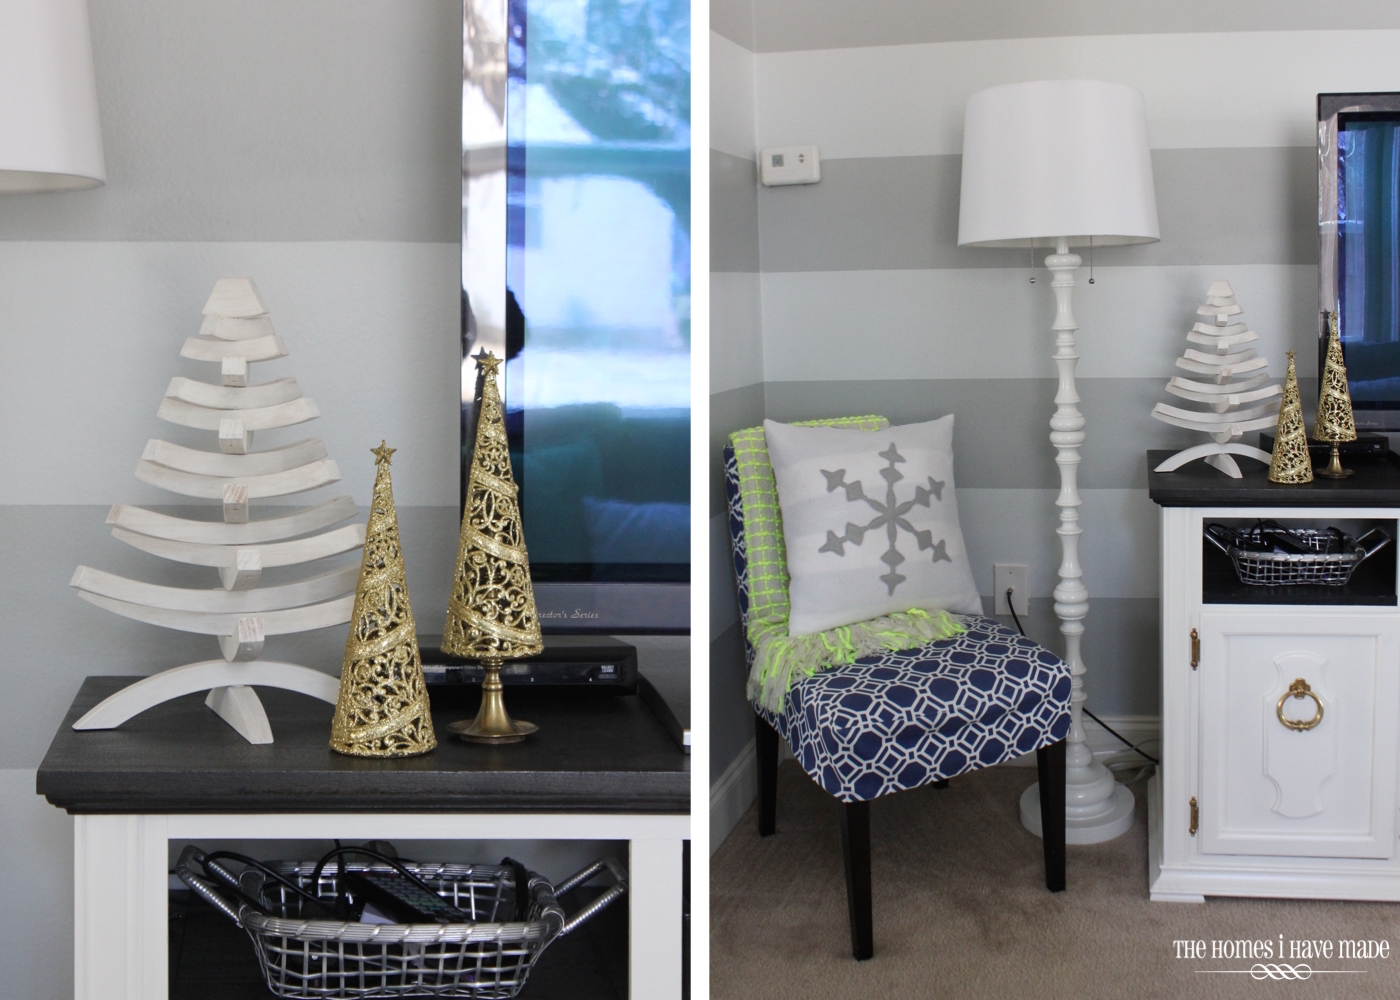 Holiday Home Tour 2014-015